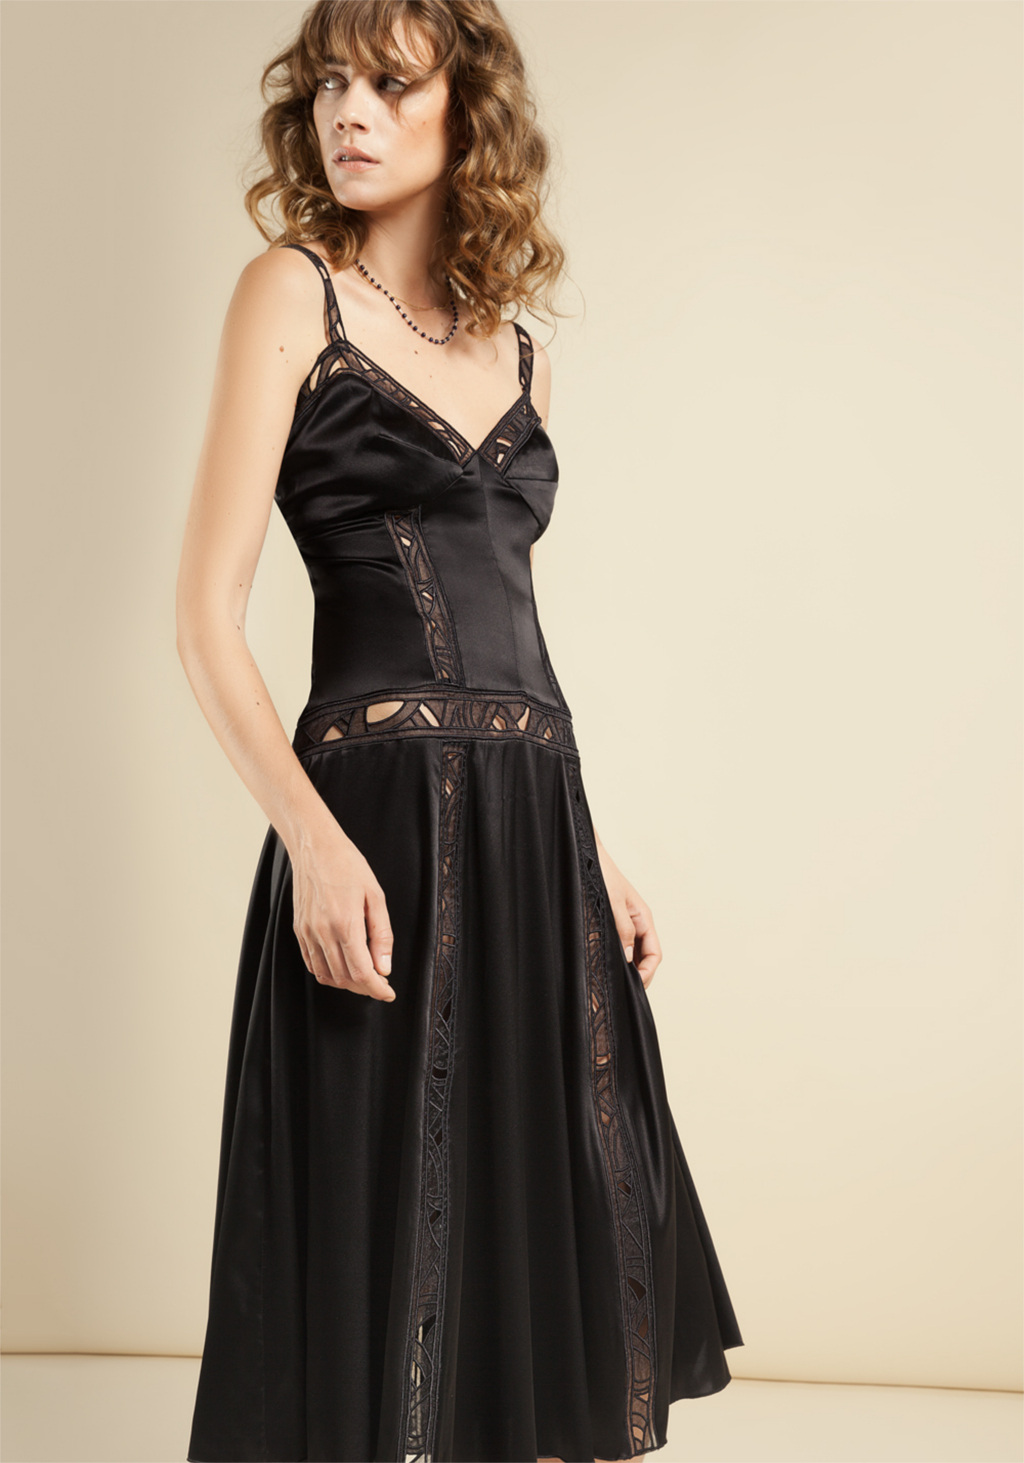 Black strech silk long dress with insert in unic embroidery organza